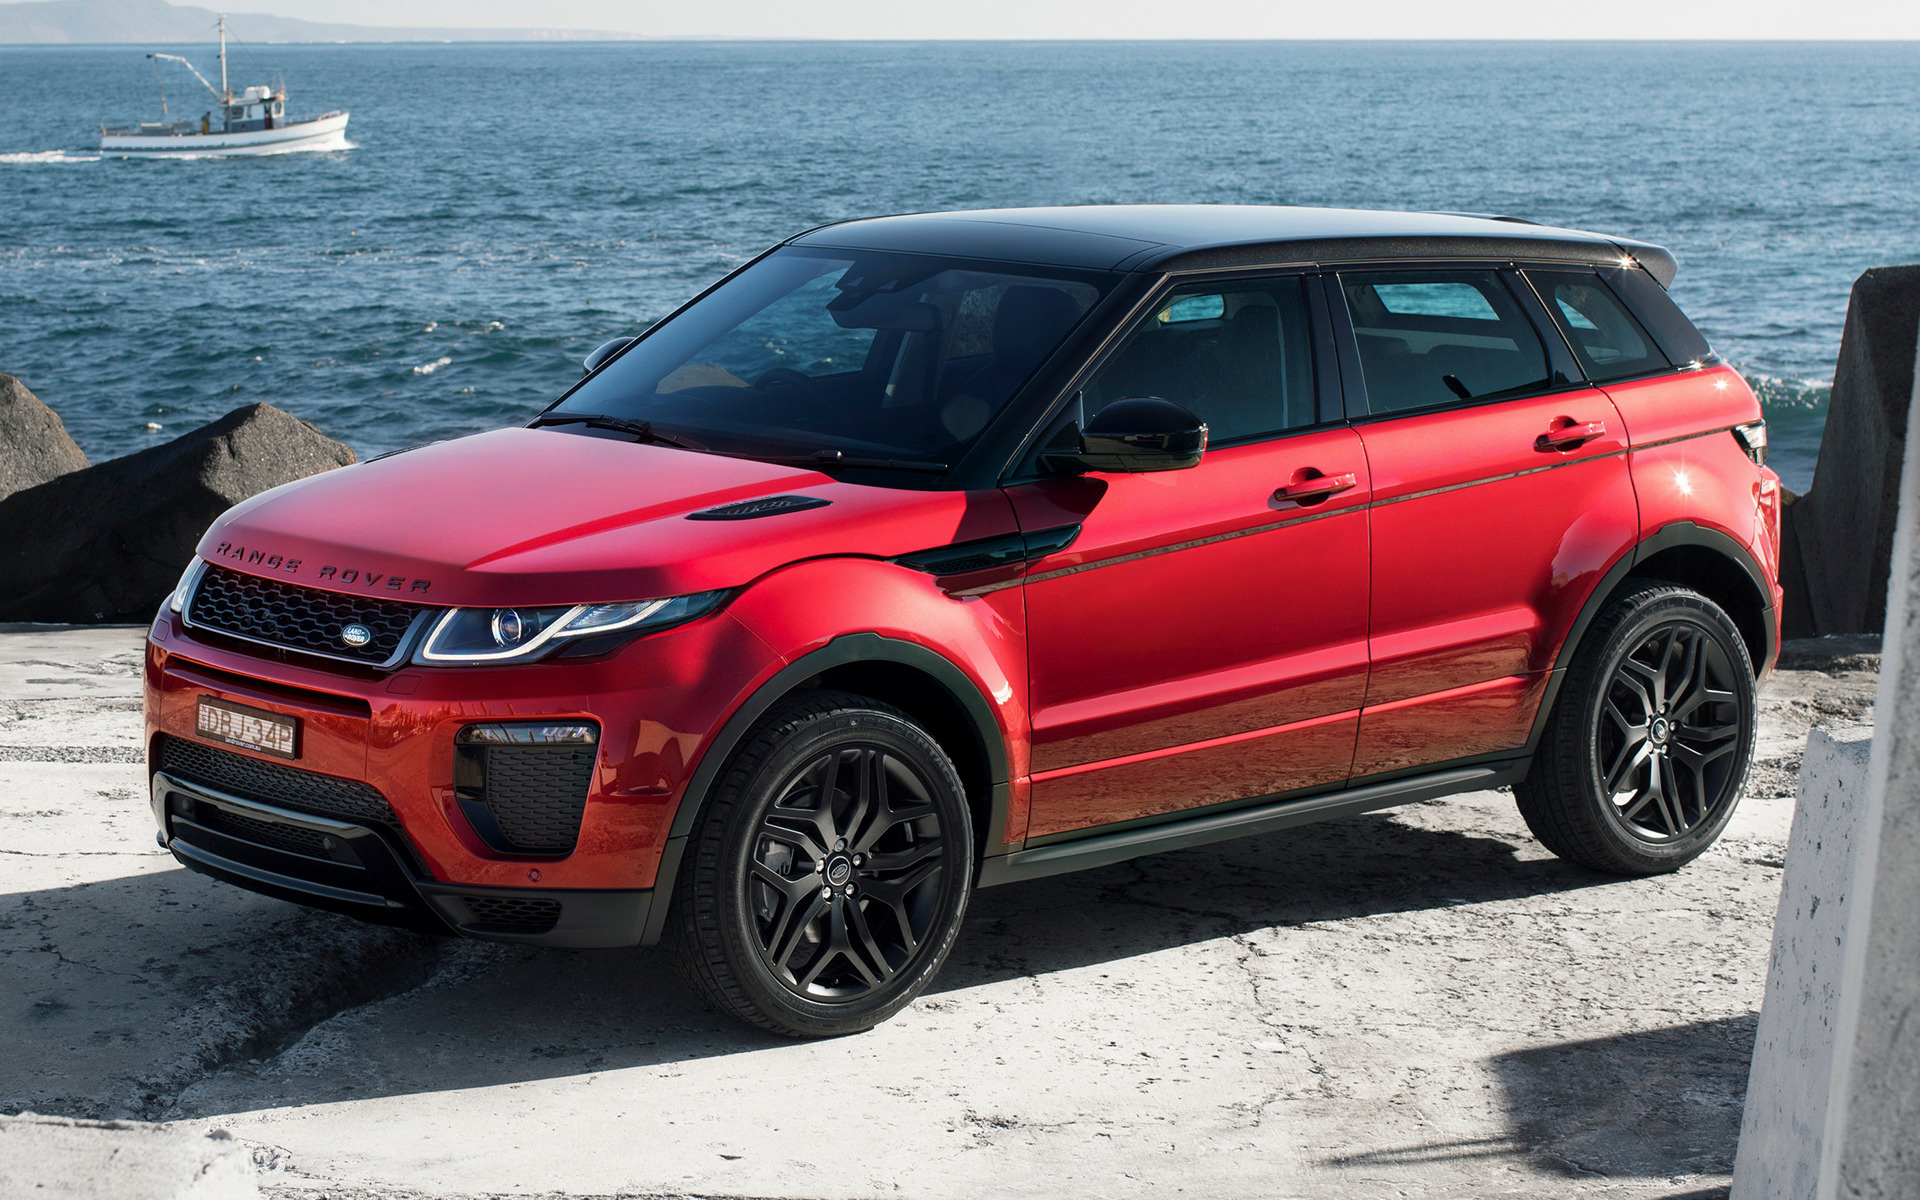 2015 Range Rover Evoque Hse Dynamic Au Wallpapers And